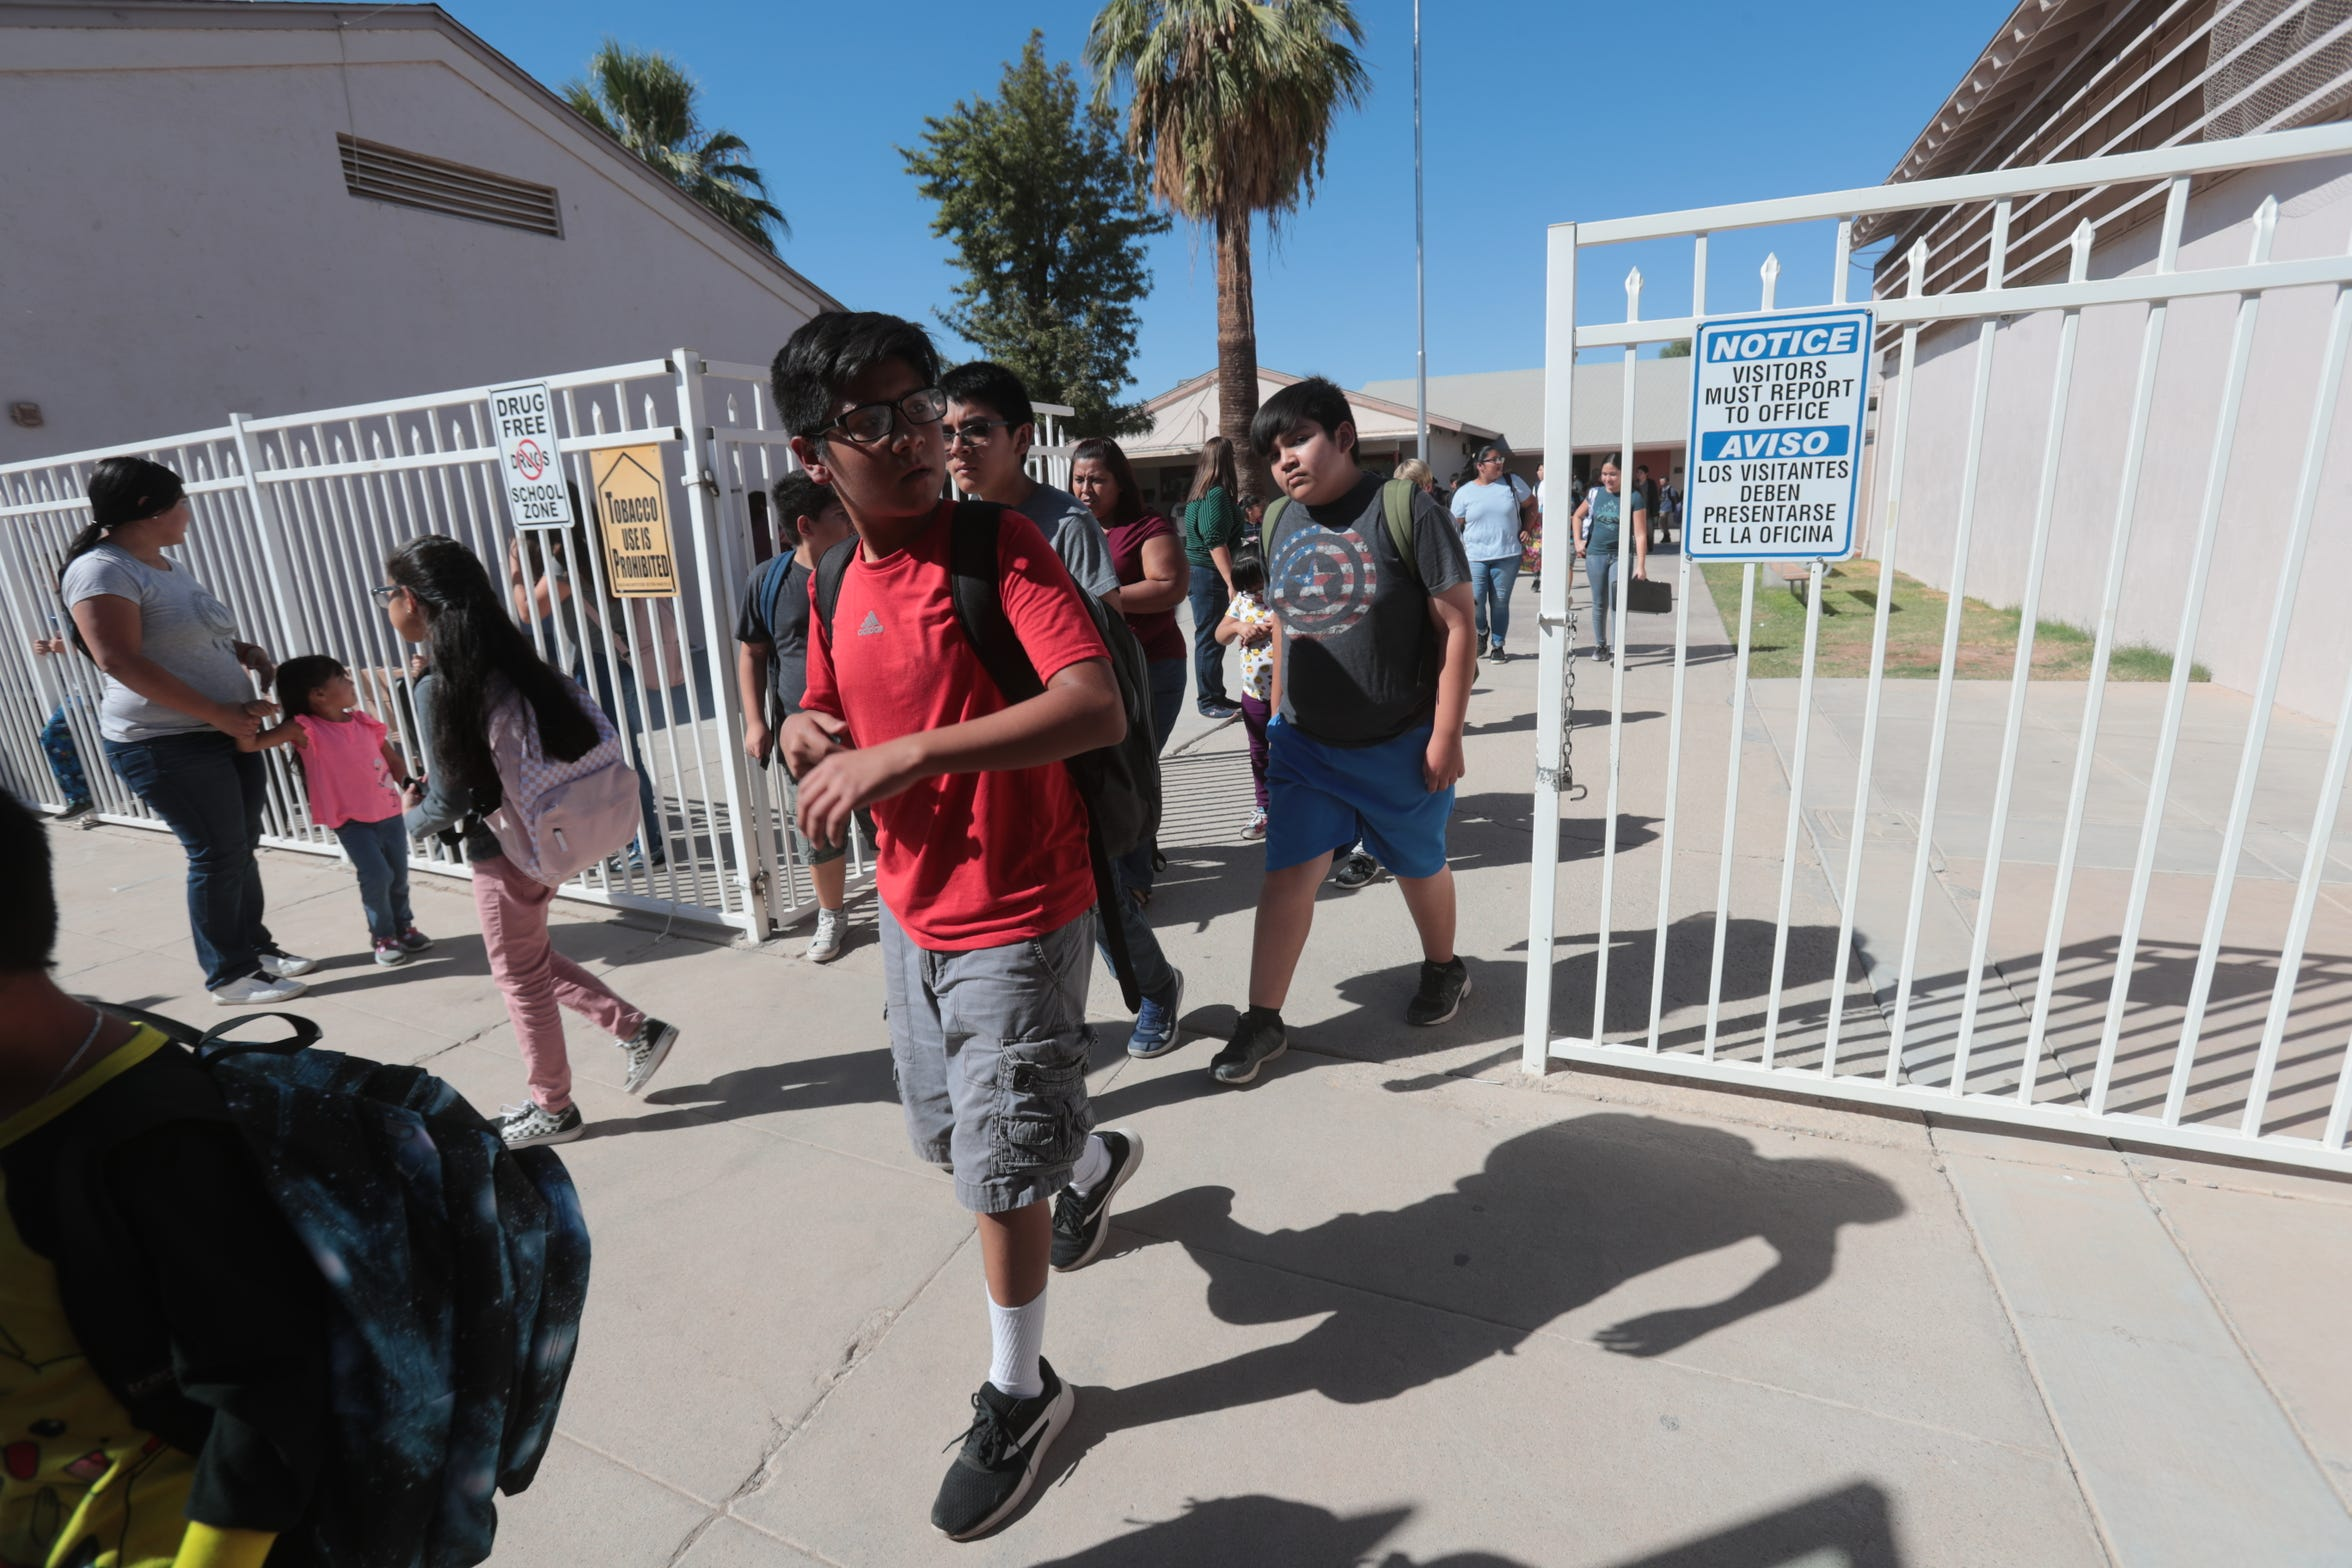 Students leave Seeley Elementary School on Monday, September 25, 2018 in Seeley, CA. The school is a site for a air pollution monitor operated by the nonprofit Comite Civico del Valle.